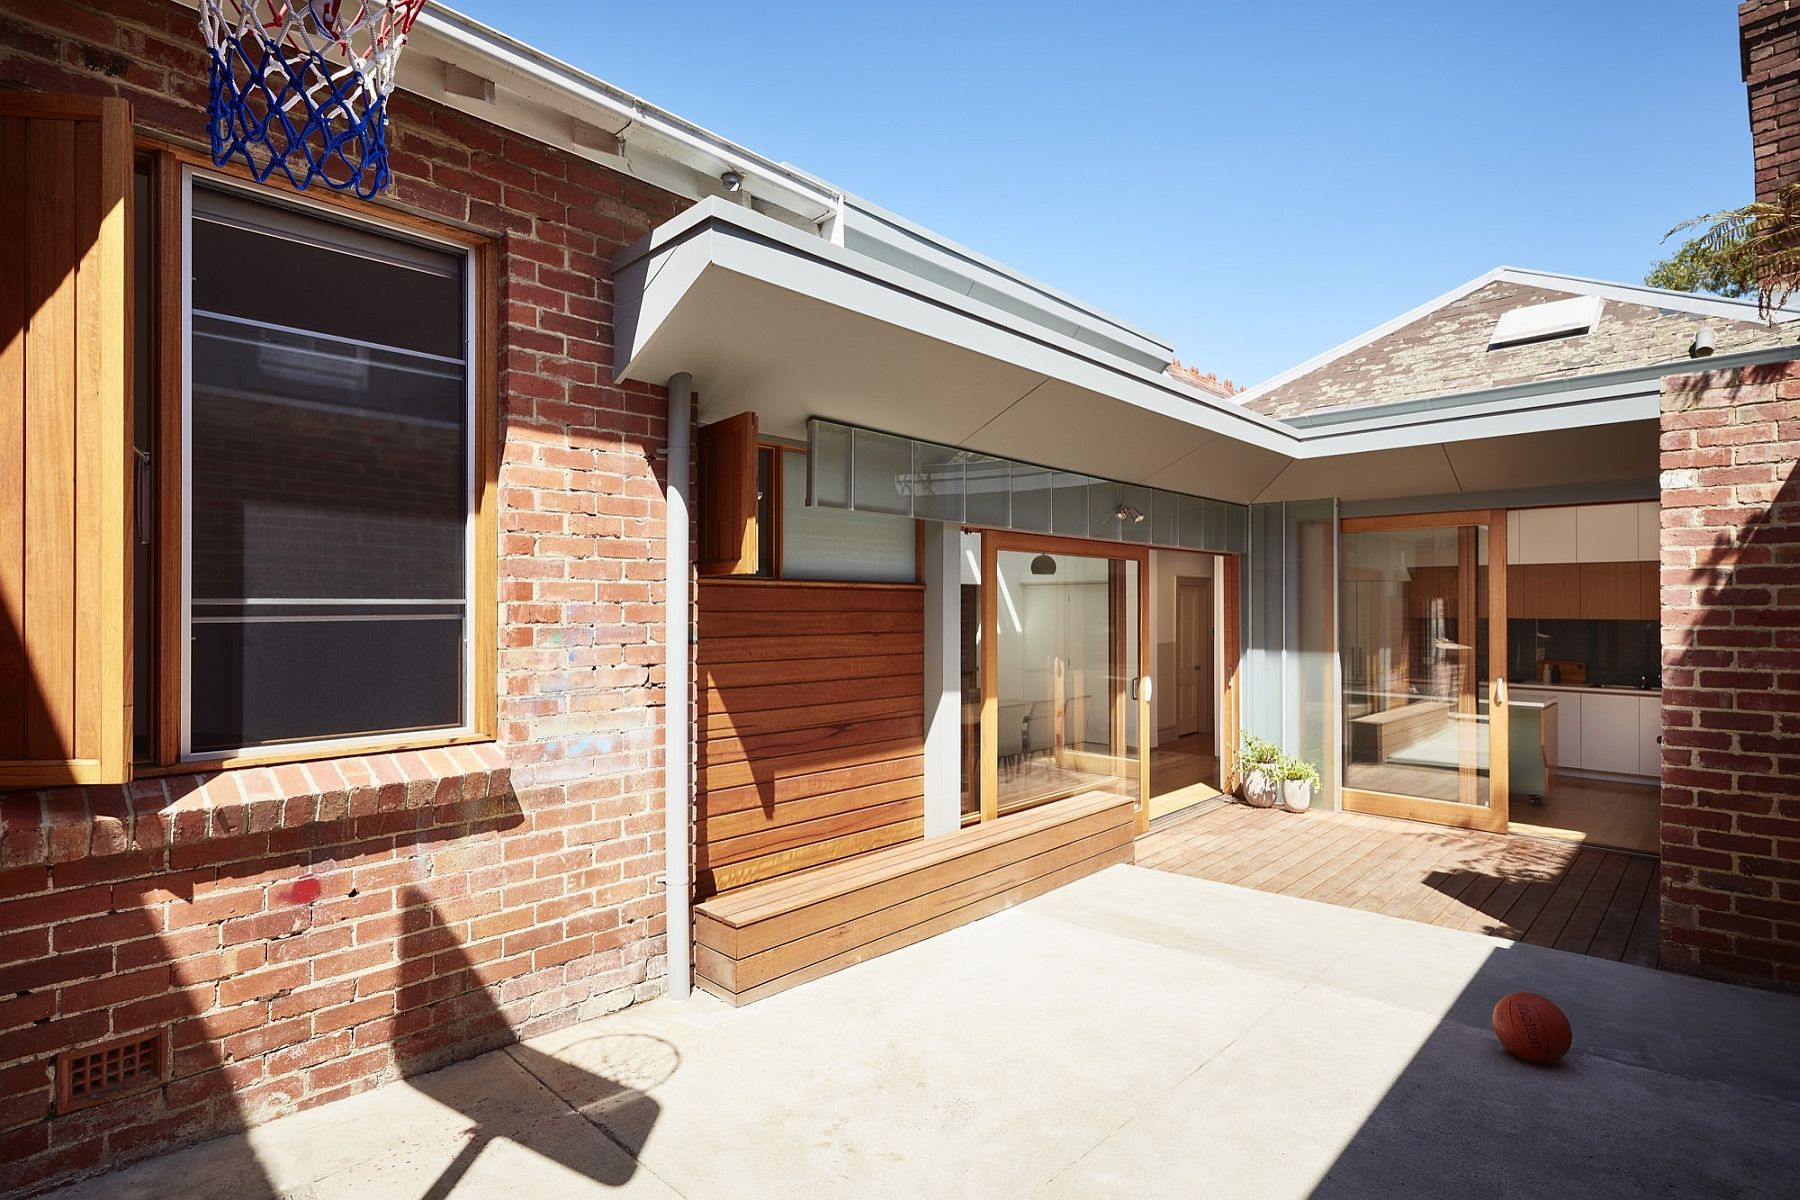 Central courtyard of the revamped Melbourne home with contemporary addition